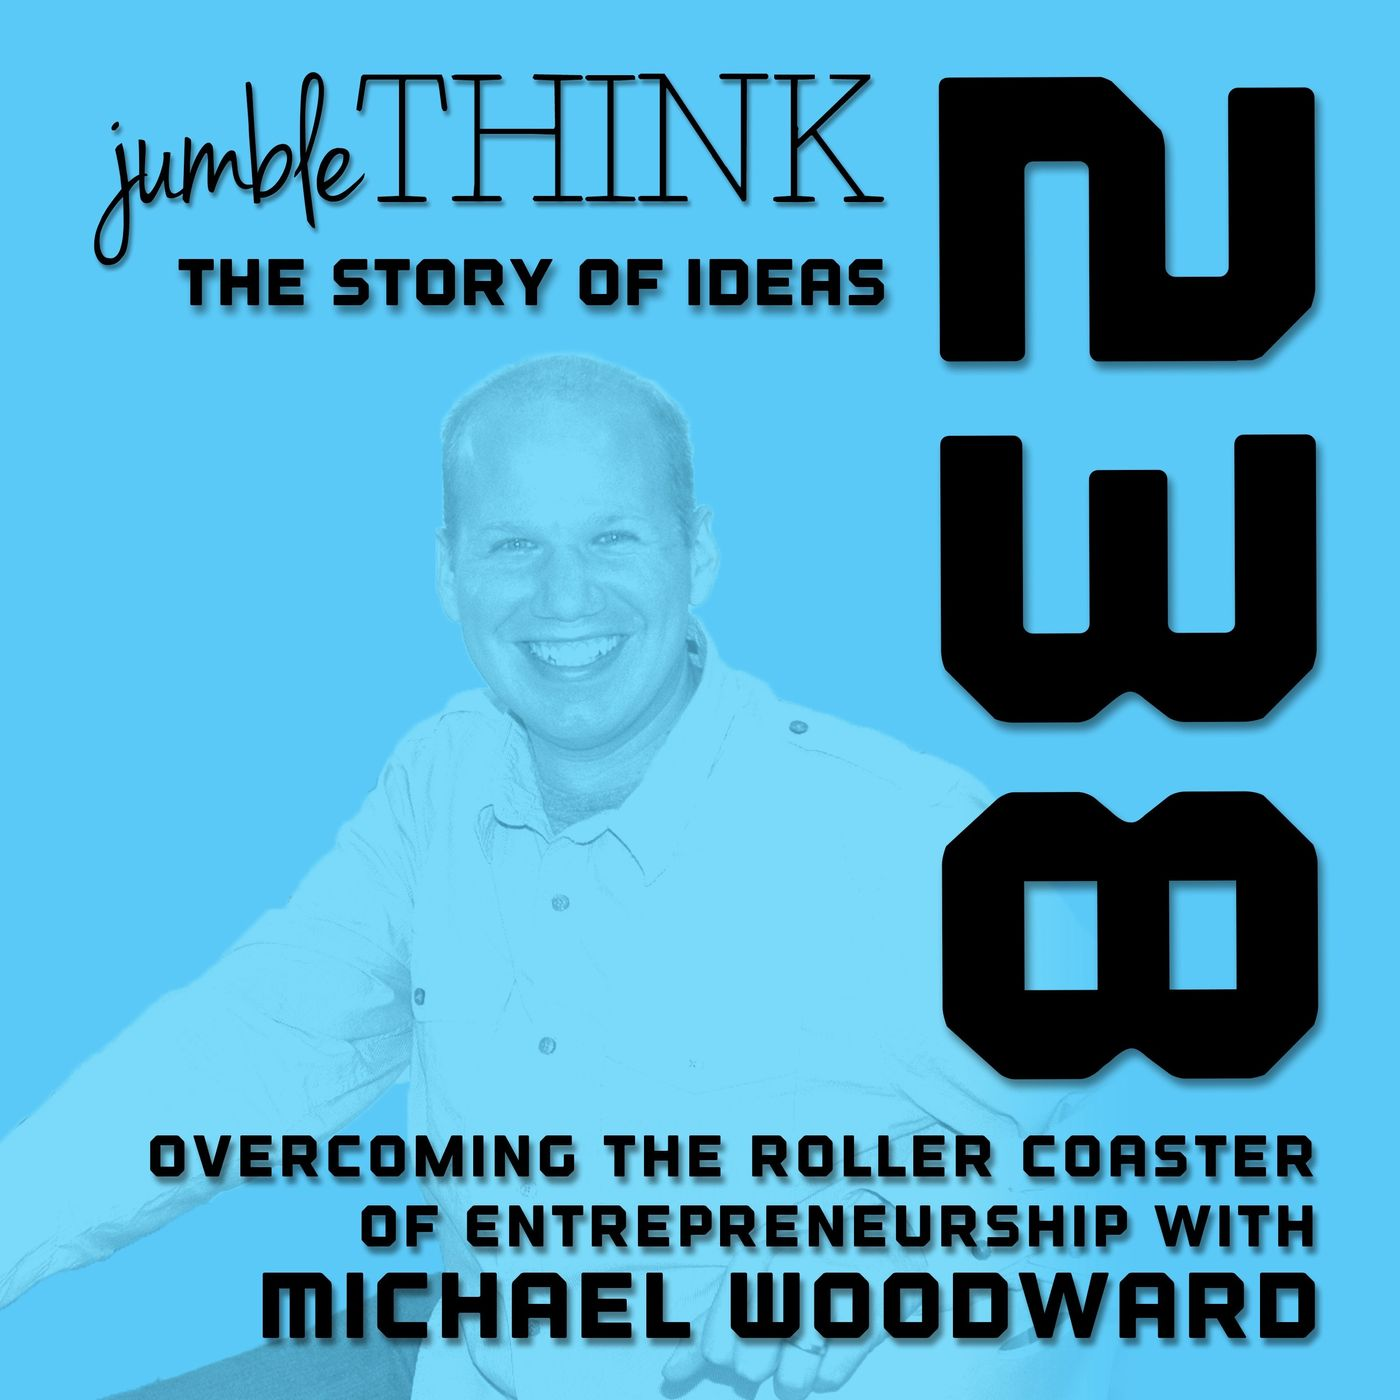 Overcoming the Roller Coaster of Entrepreneurship with Michael Woodward